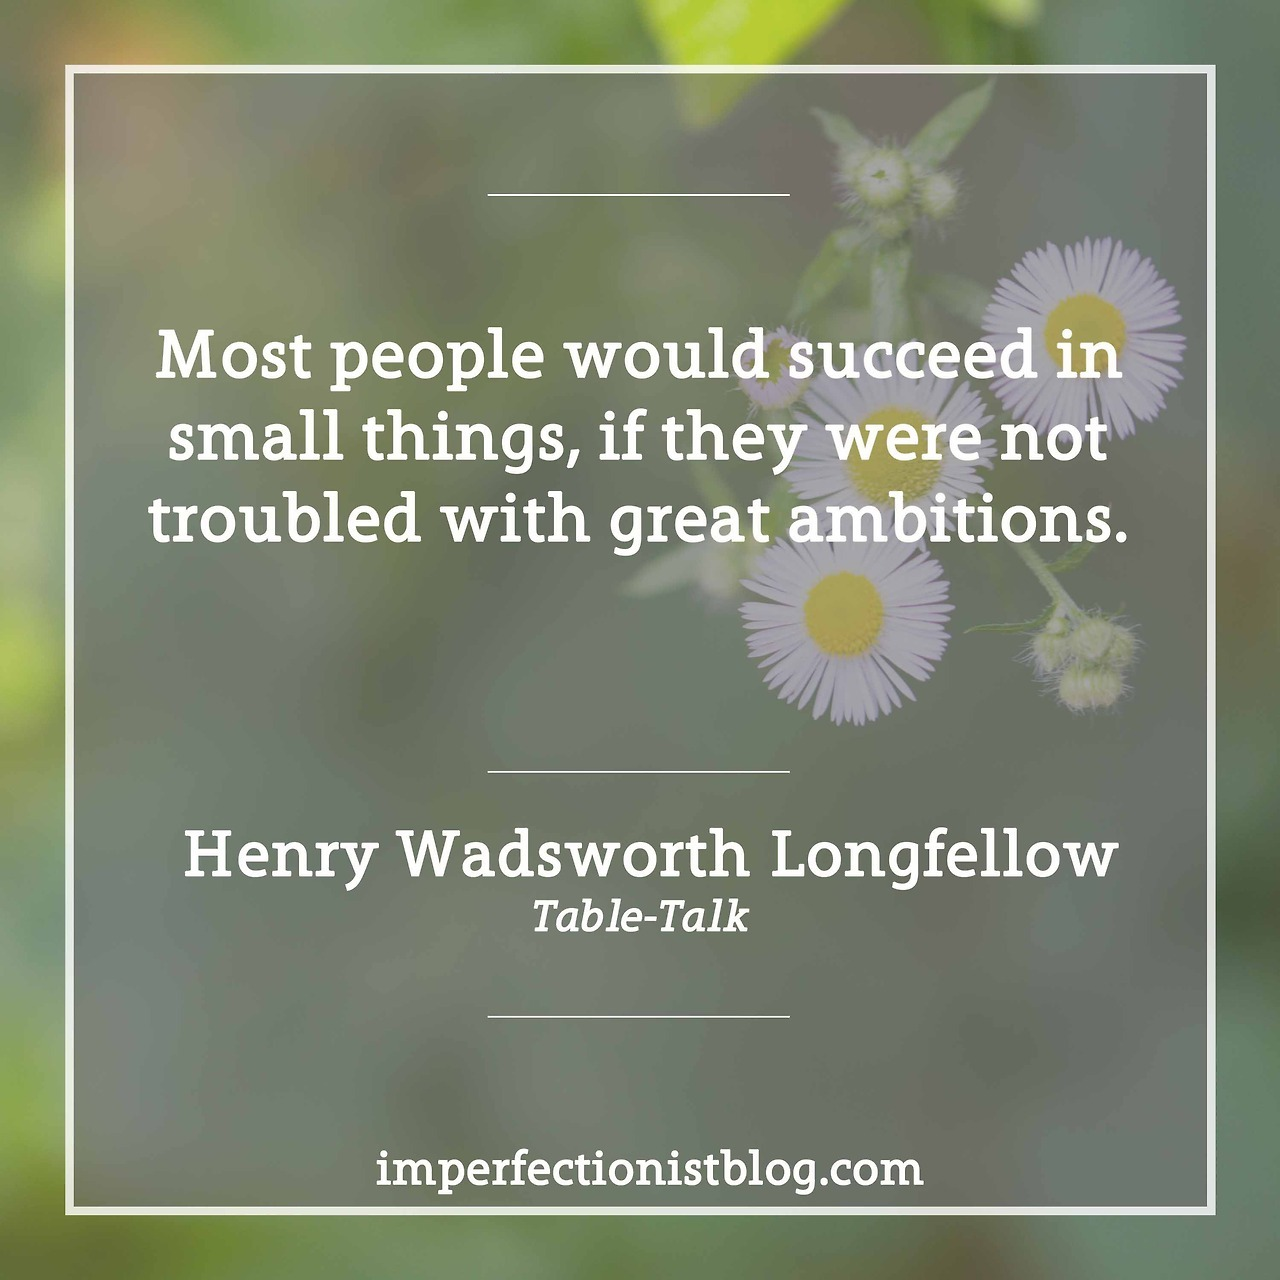 "#133 - ""Most people would succeed in small things, if they were not troubled with great ambitions."" -Henry Wadsworth Longfellow (Table-Talk)"